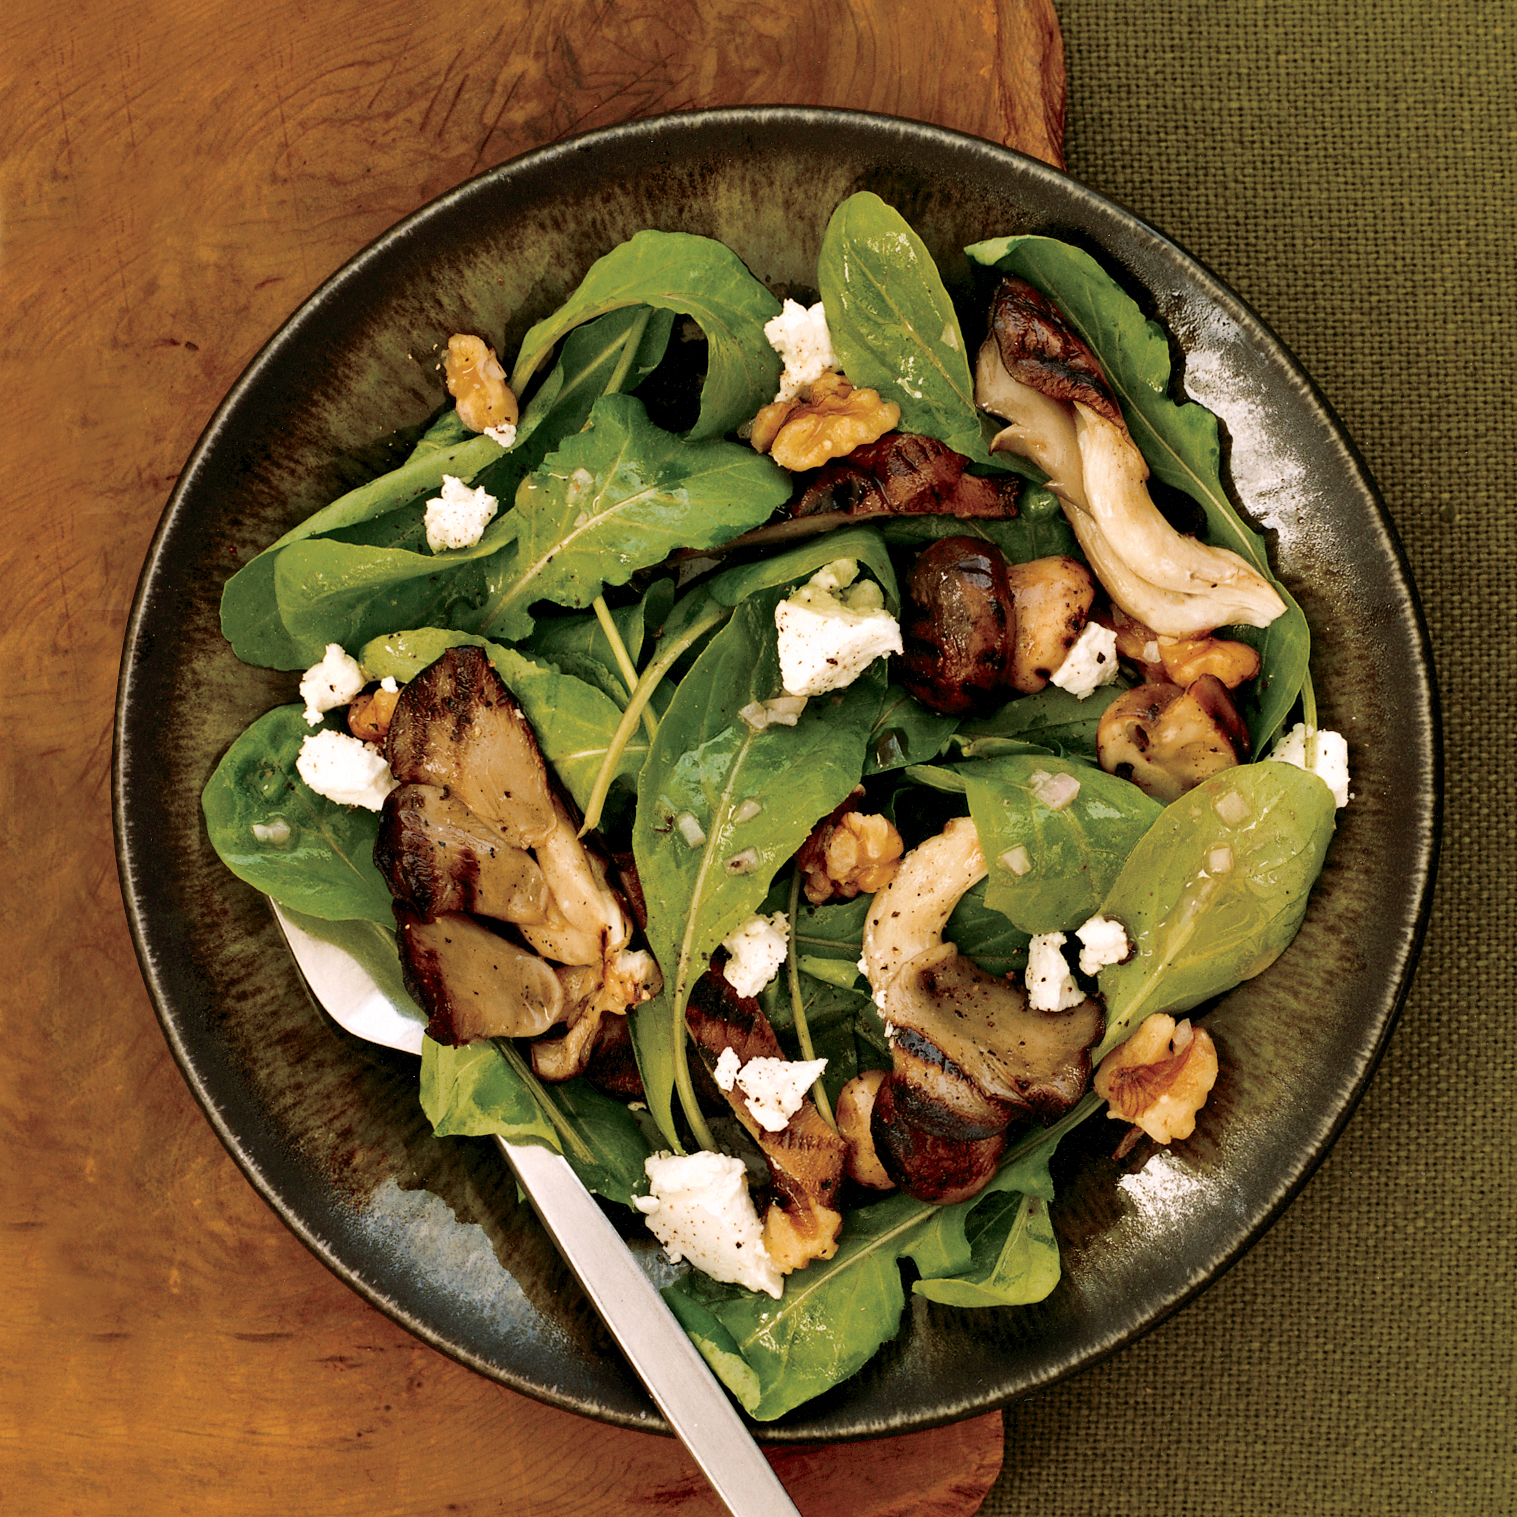 Arugula Salad with Grilled Mushrooms and Goat Cheese